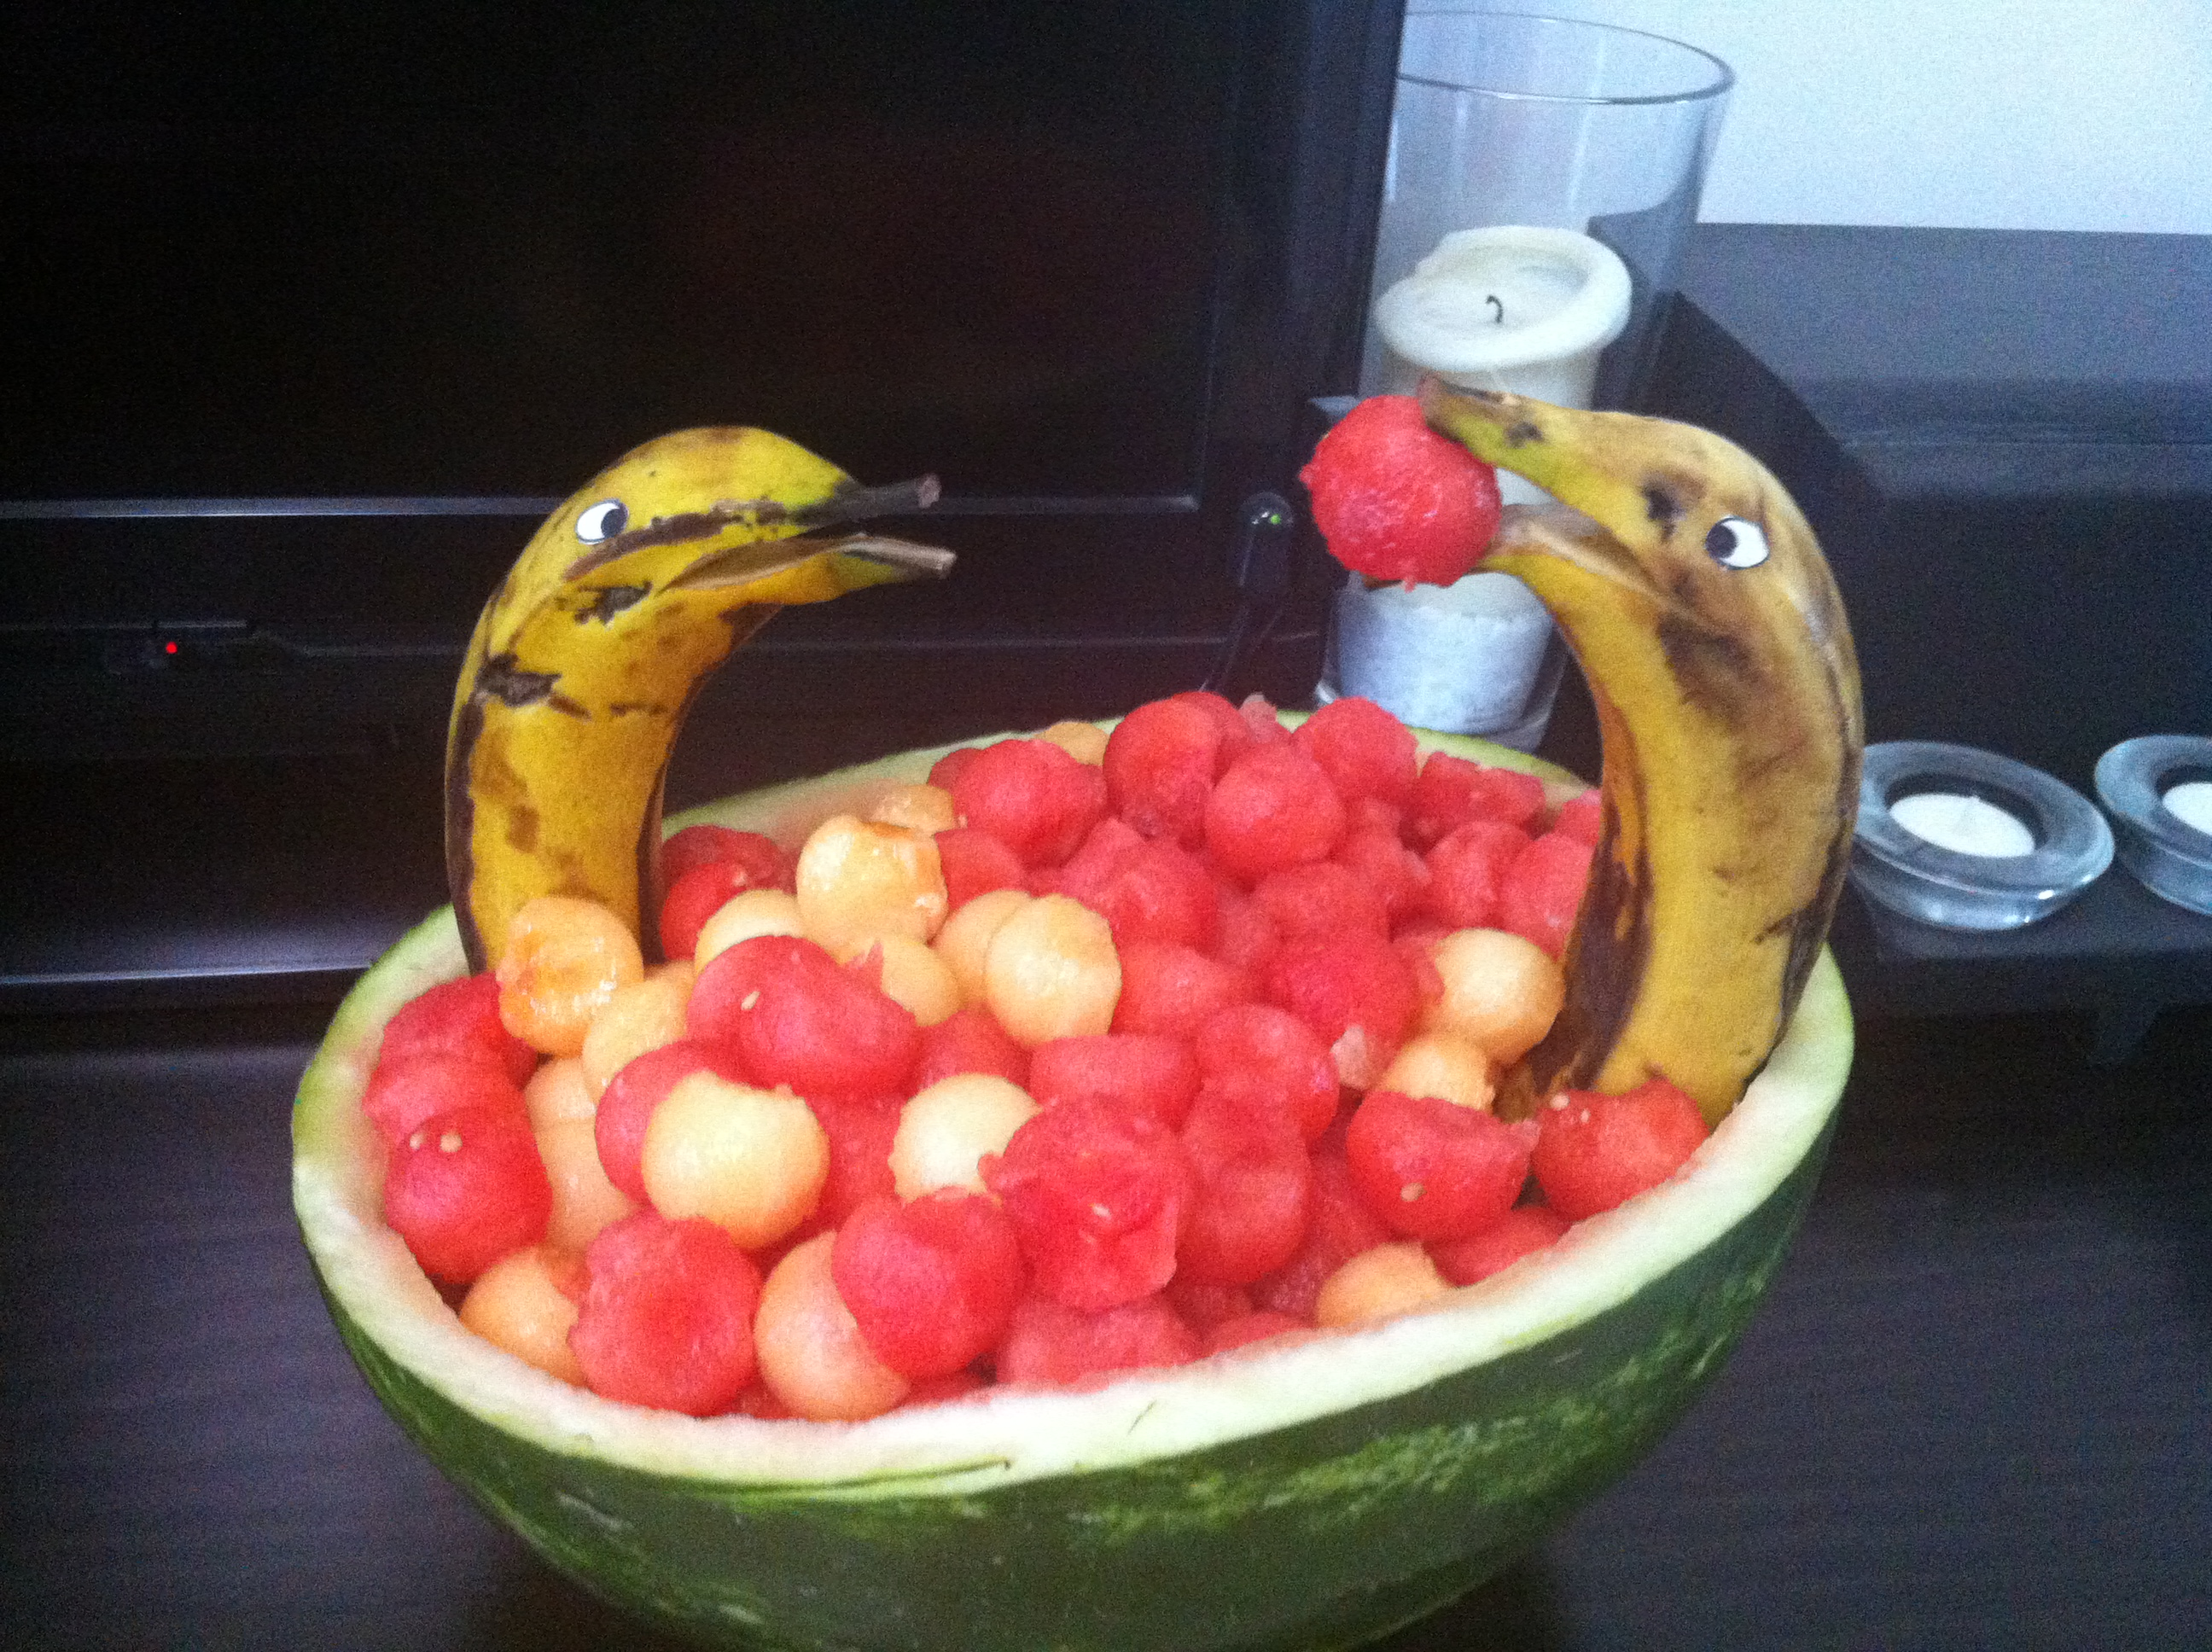 Decorated dessert - Dolphins swimming in the melons and watermelons